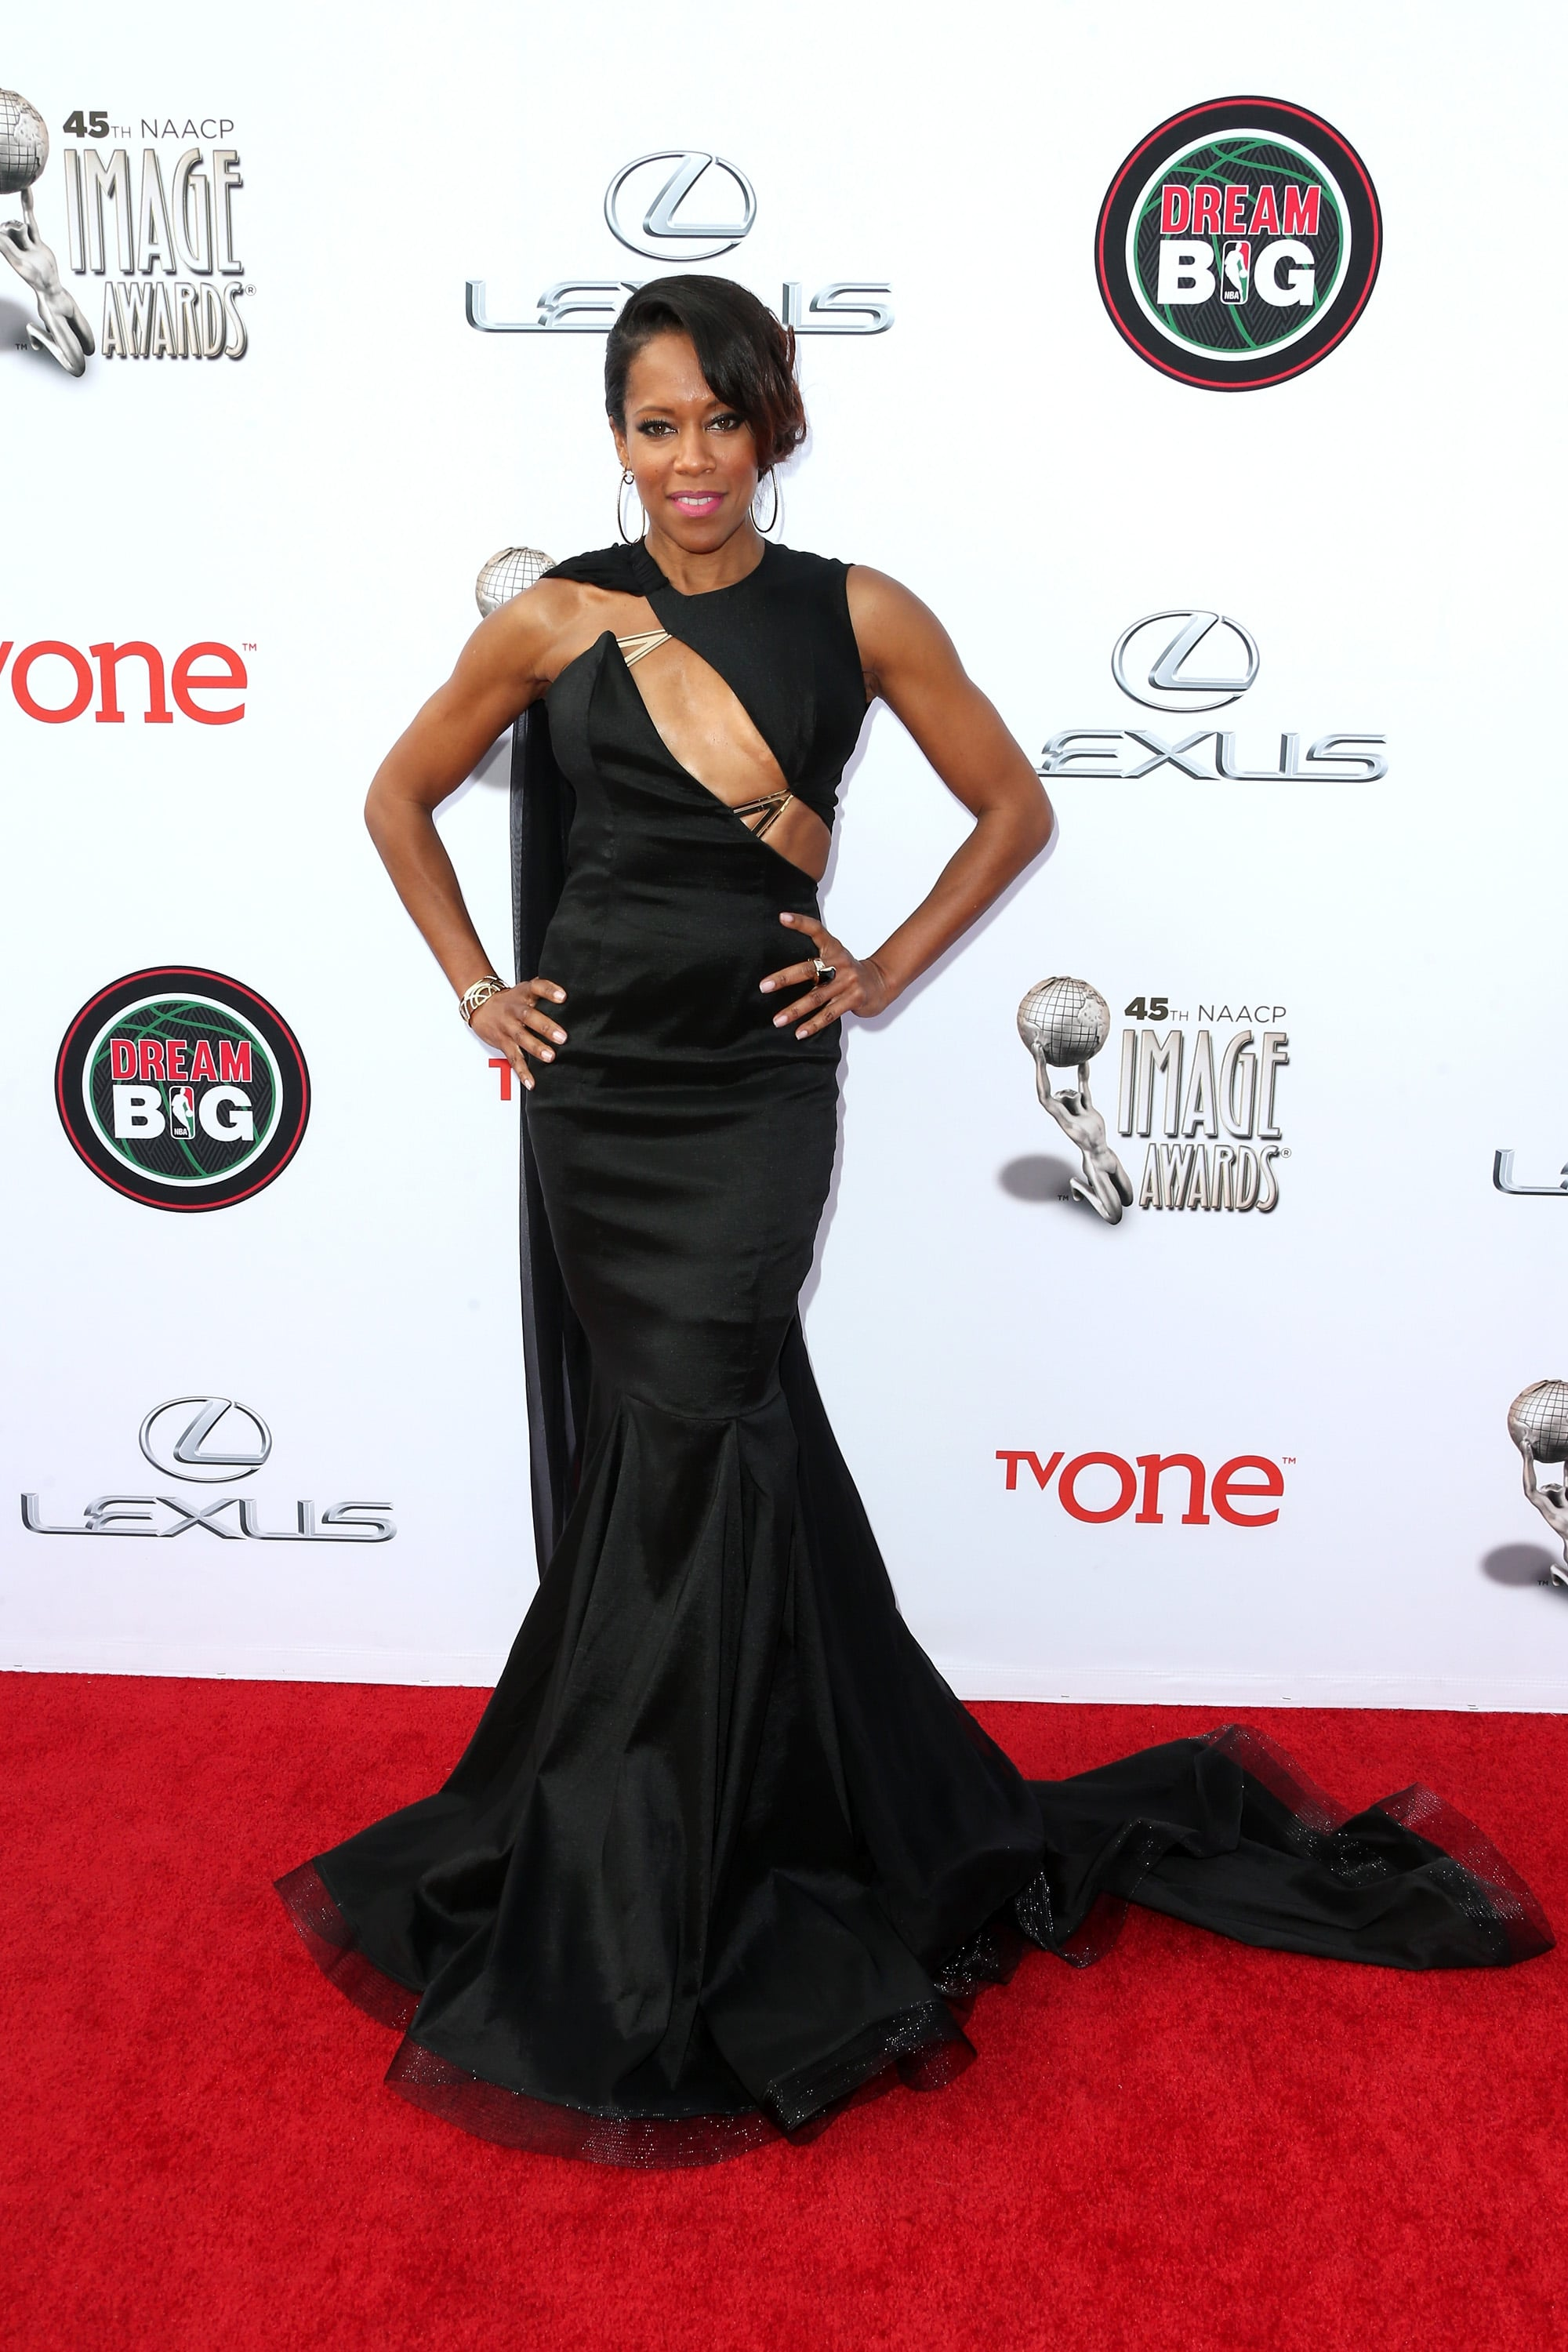 Regina King was nominated for outstanding actress in a drama series.